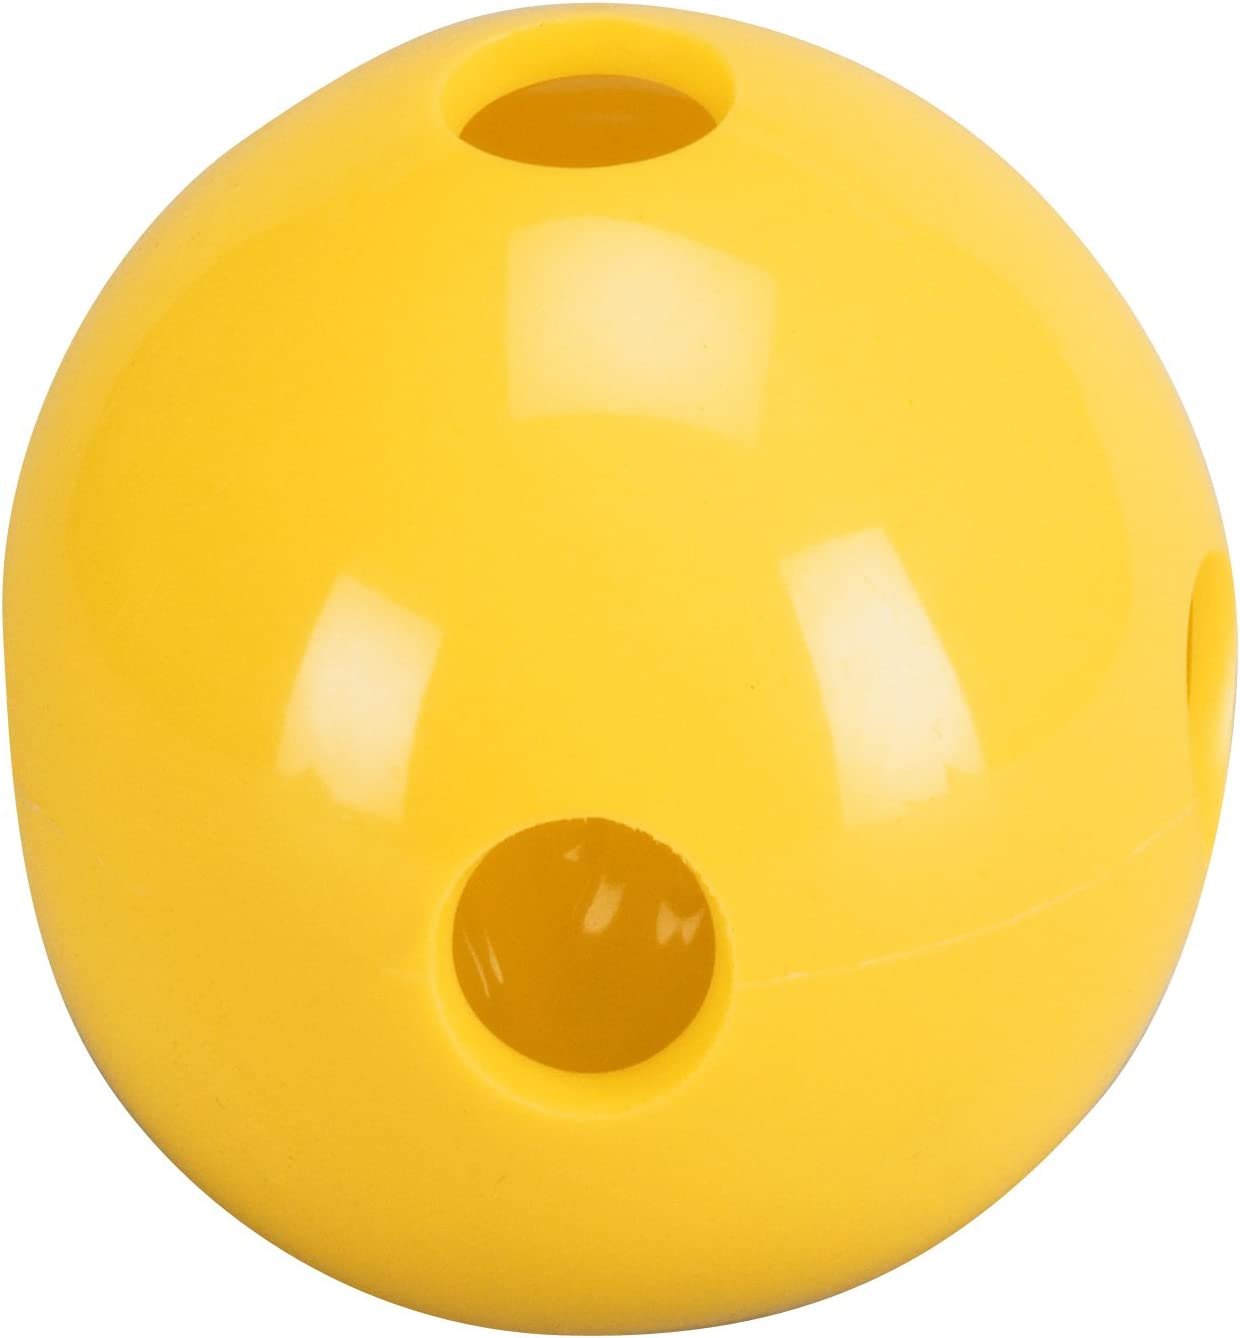 Total Control Sports Hole Ball (Pack of 48), Yellow